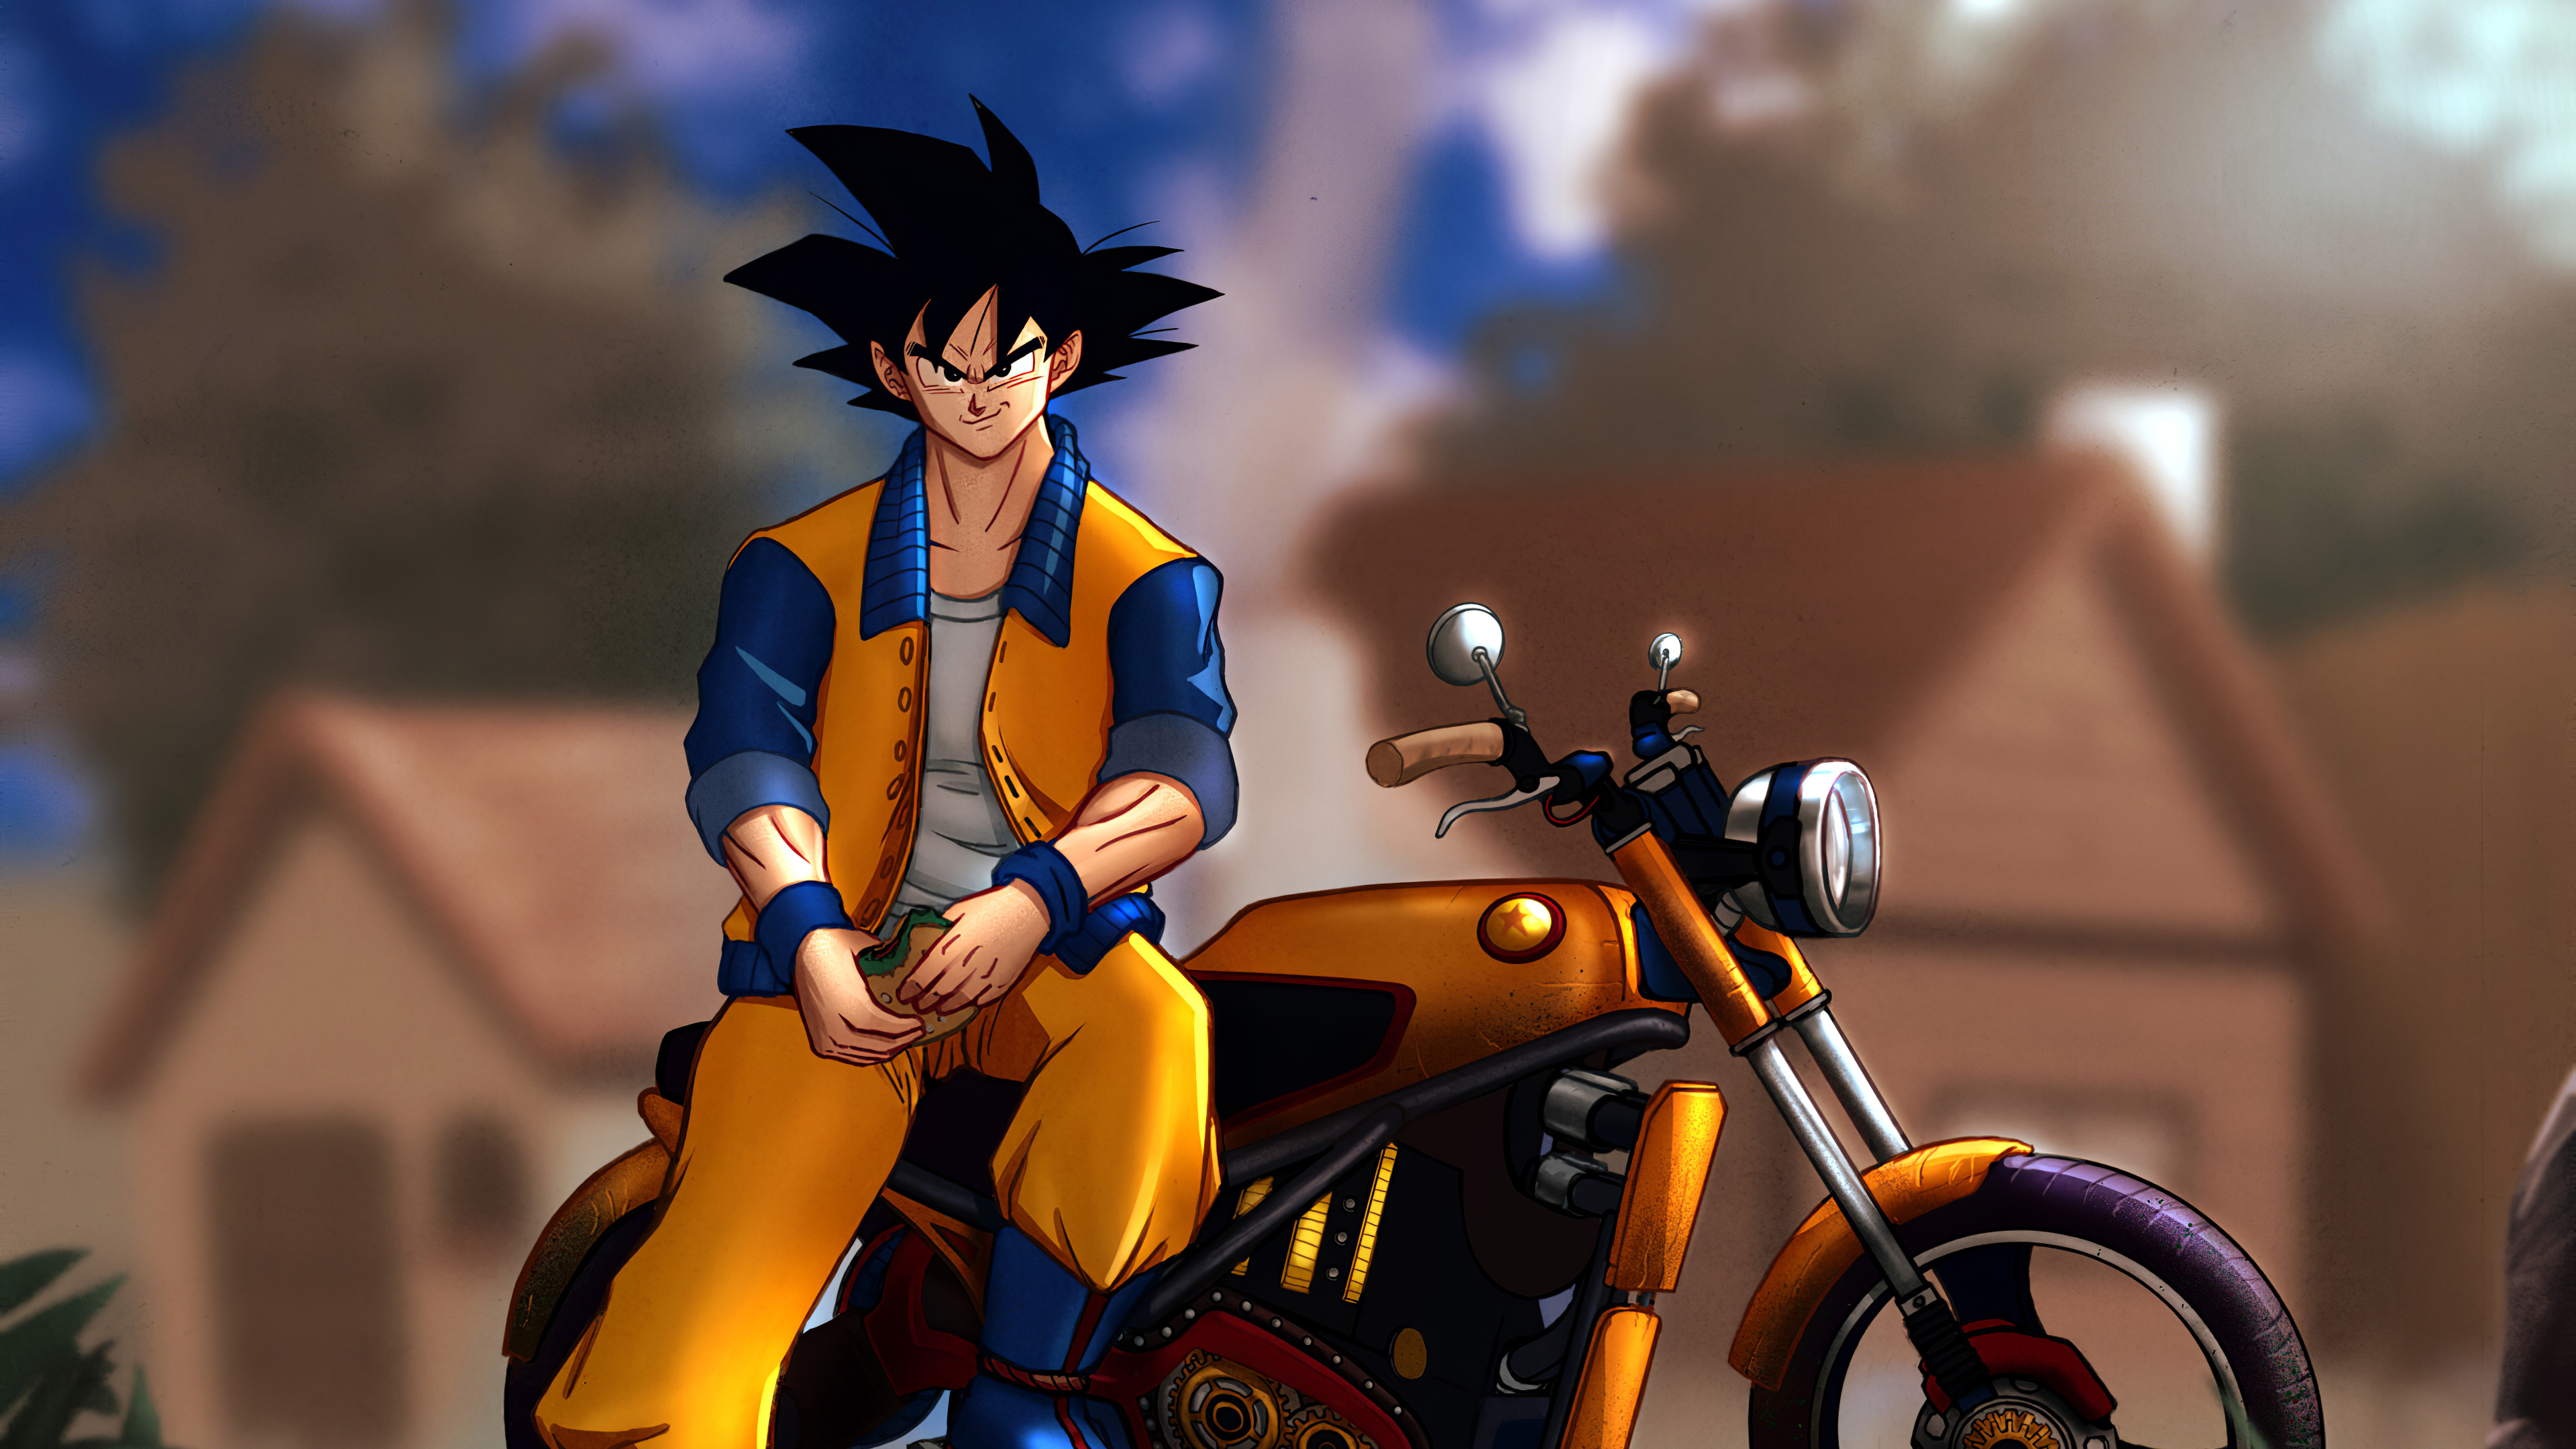 3840x2160 Goku Motorcycle 4k Wallpaper Hd Anime 4k Wallpapers Images Photos And Background